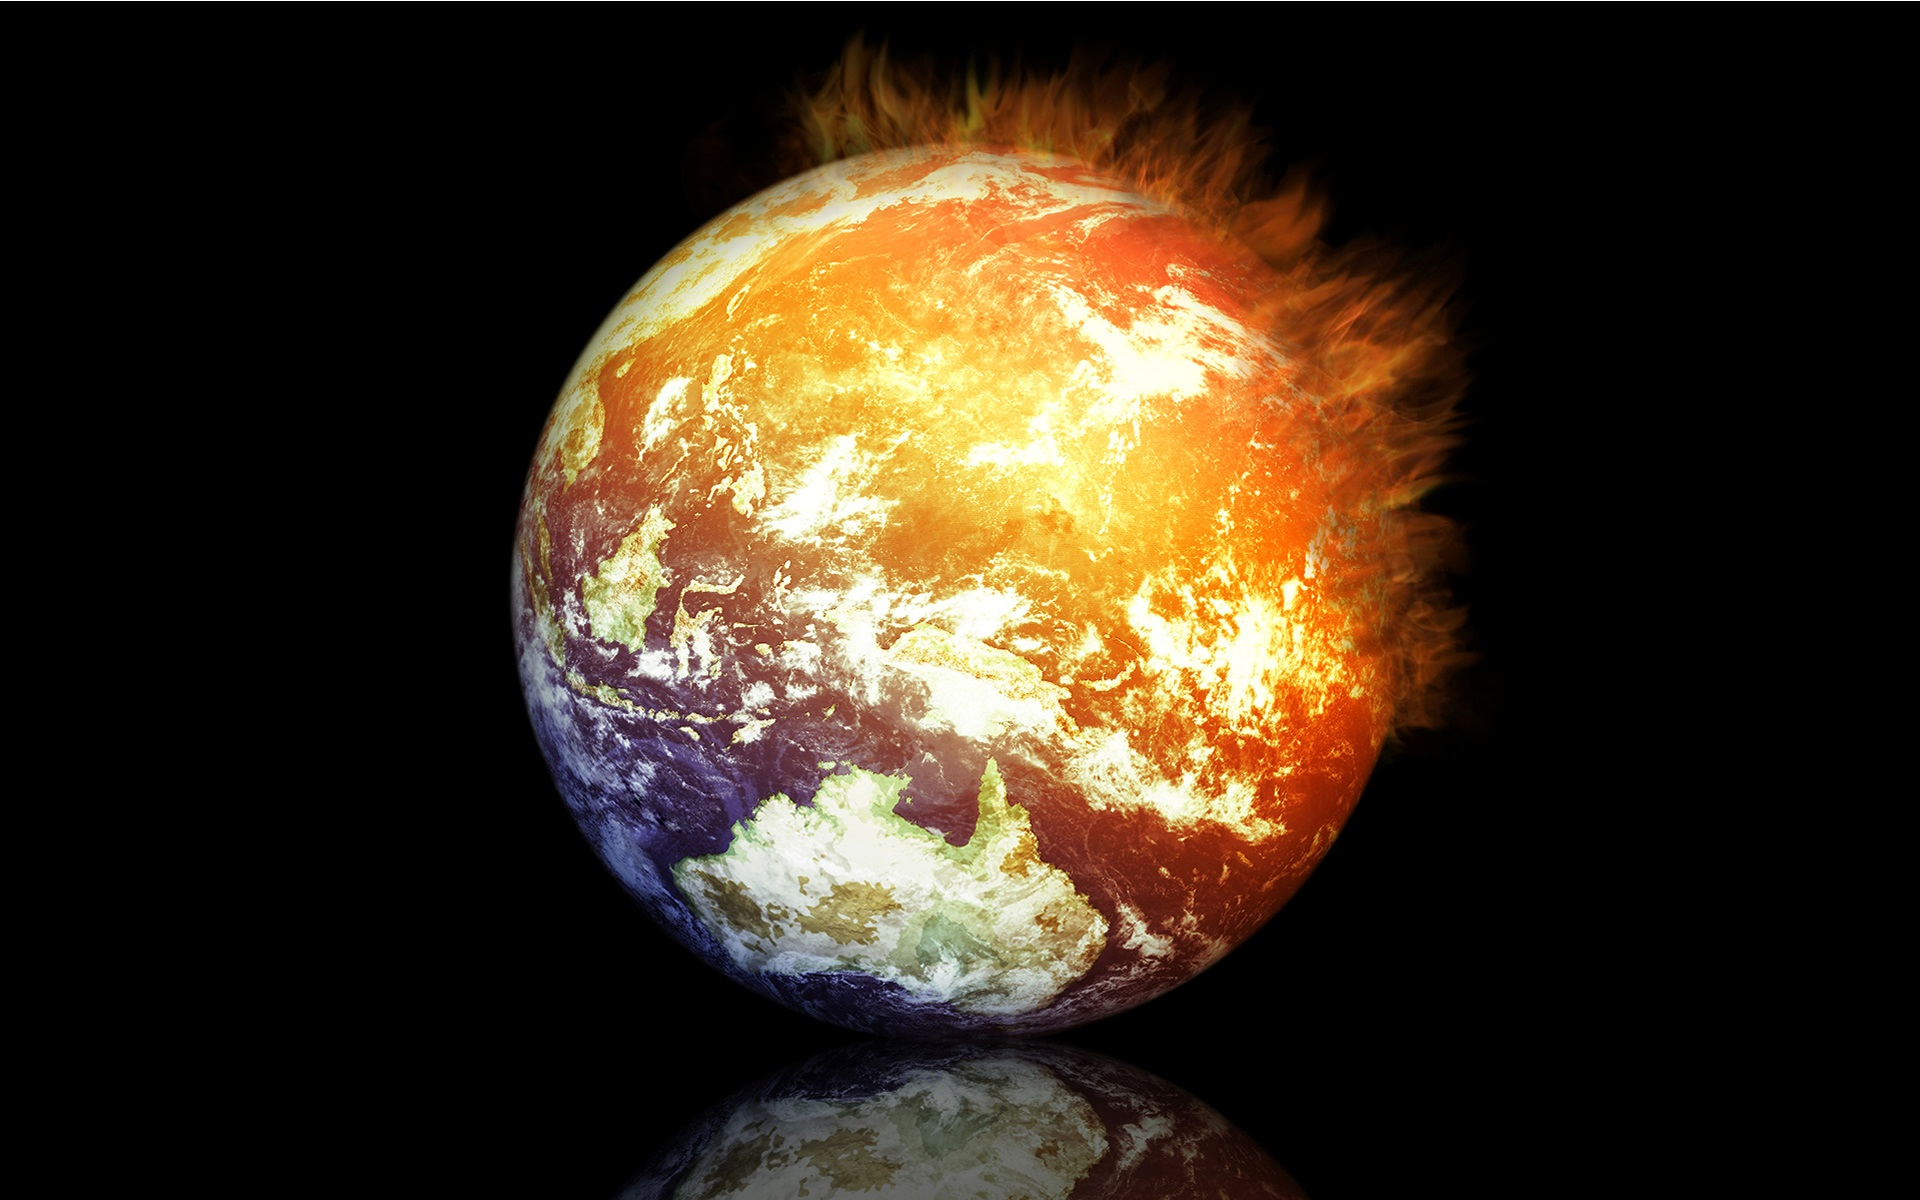 Has human behavior really changed the Earth's climate baseline? Specifically, has our carbon dioxide emissions helped make the planet hotter?